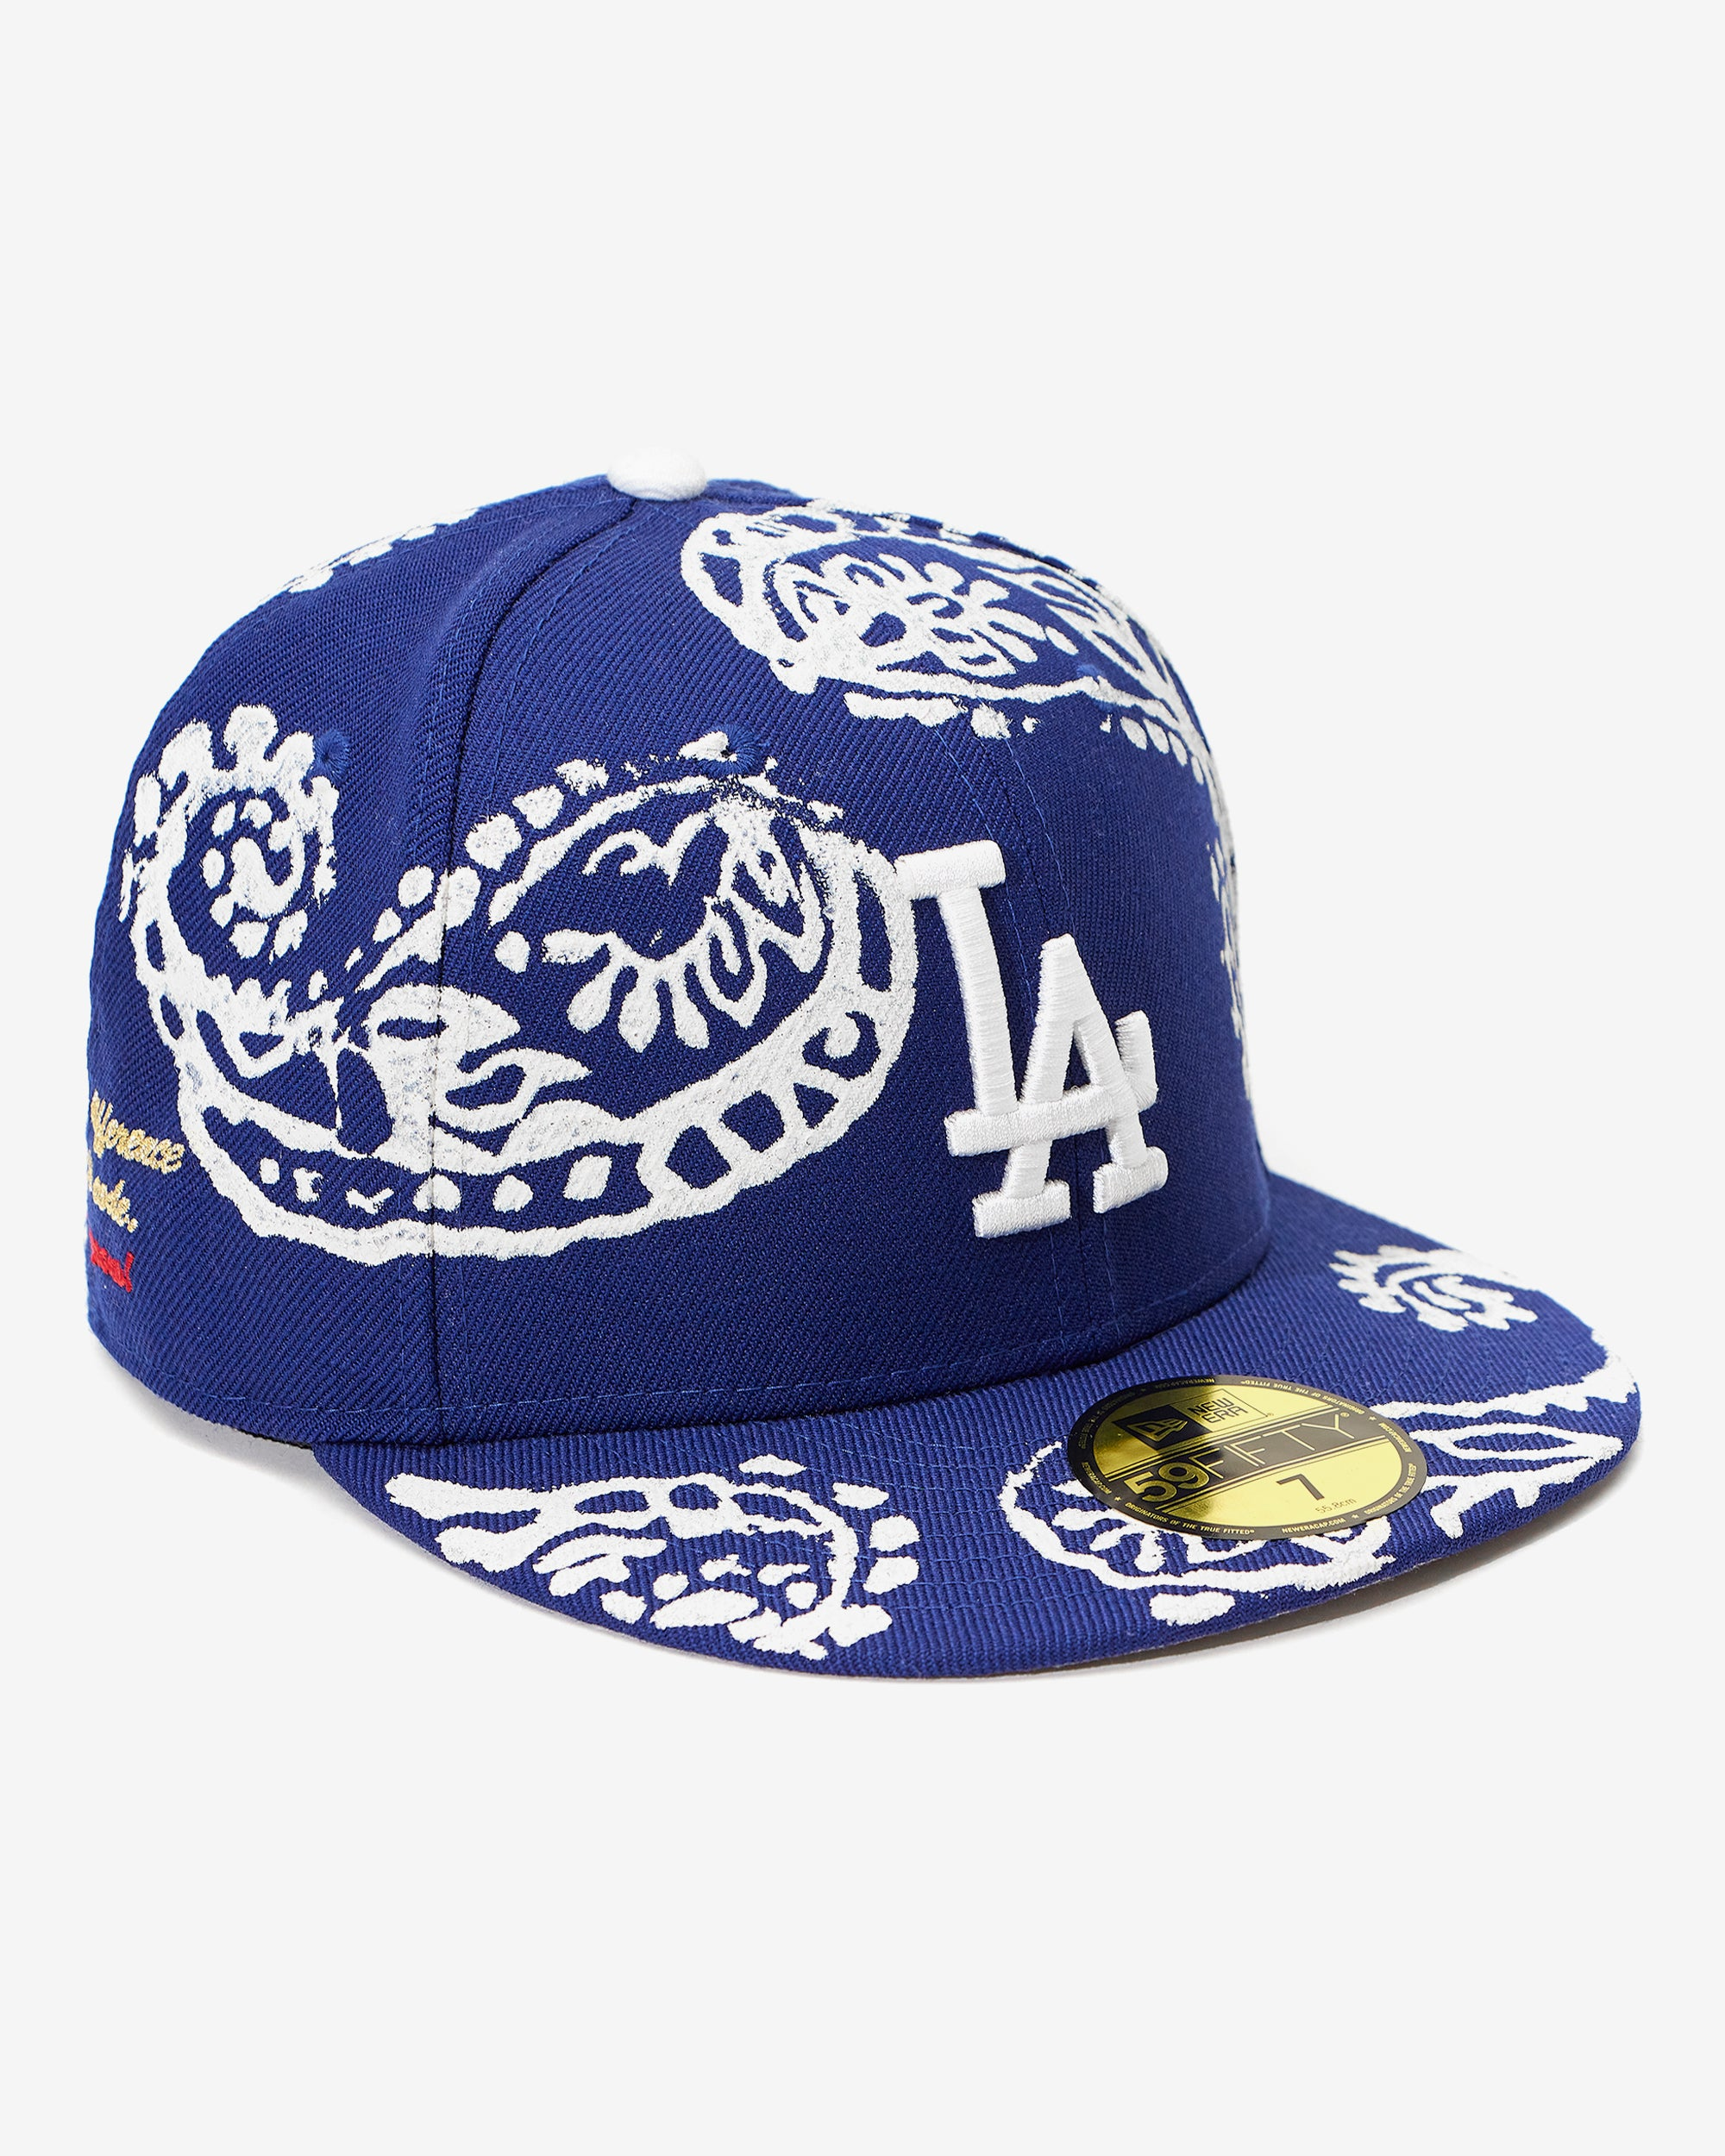 (BLUE) WCKDTHGHTS / NEW ERA PAISLEY FITTED'S